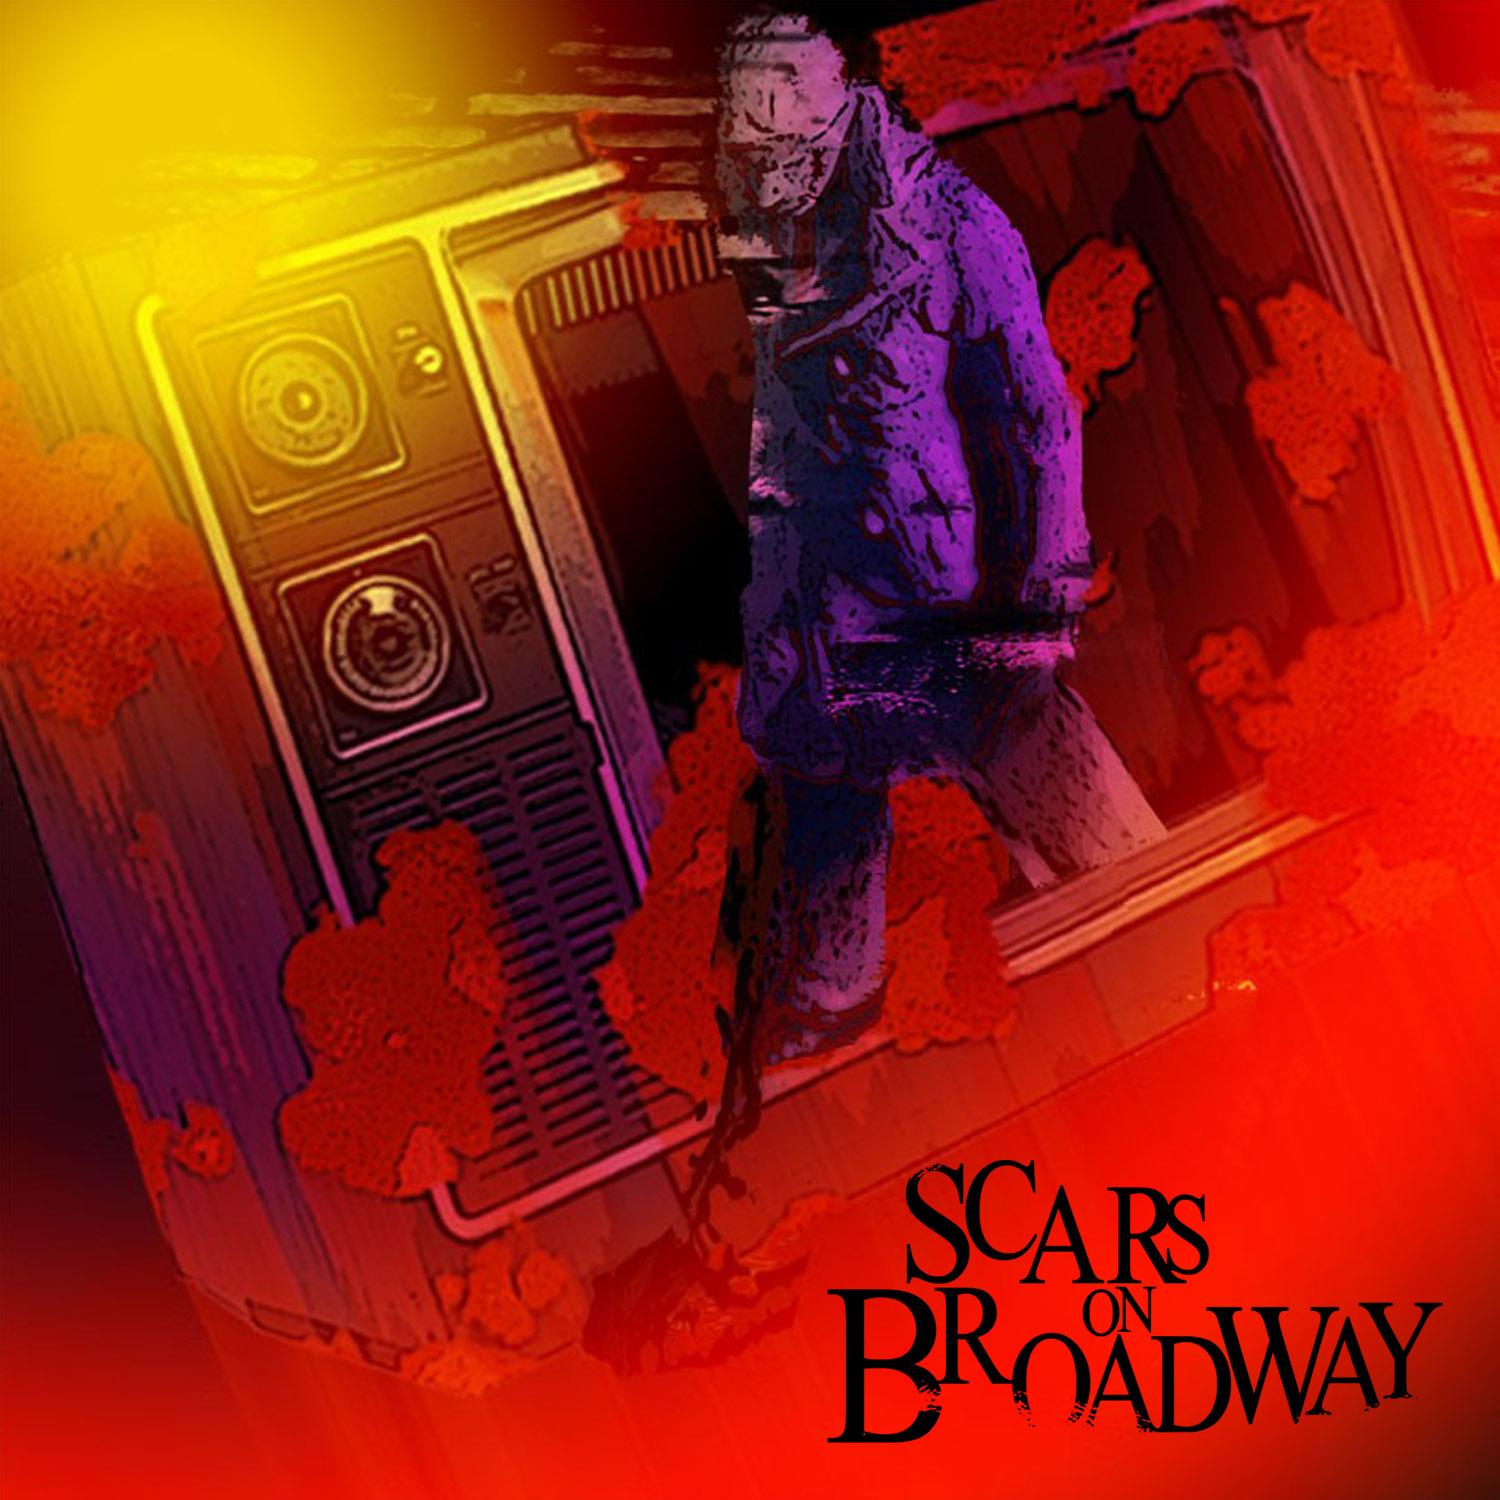 scars_on_broadway_2008.jpg